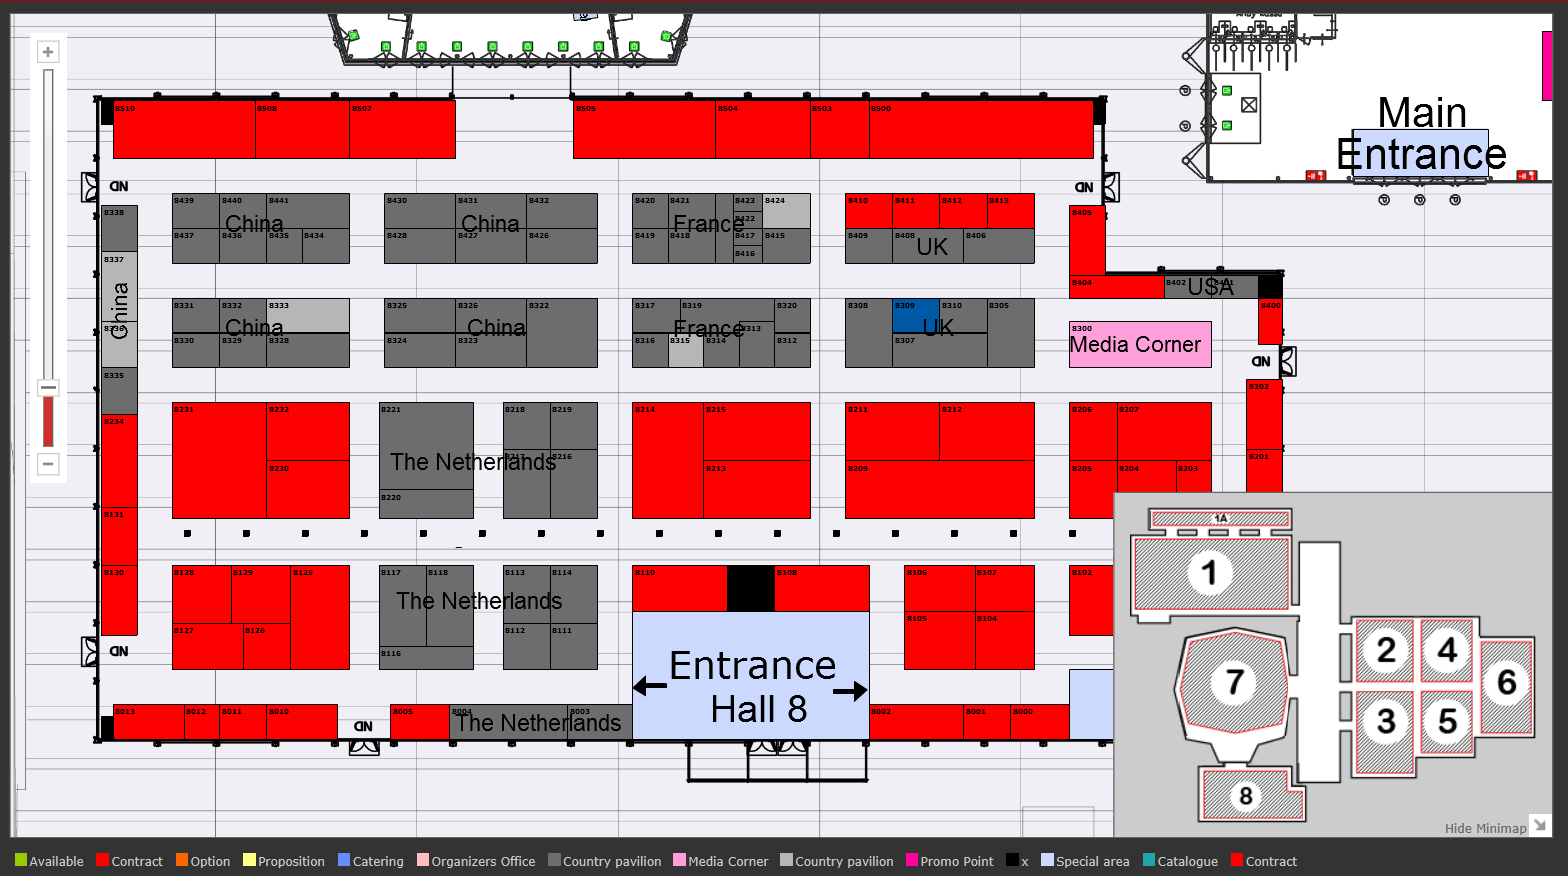 Europort exhibition layout